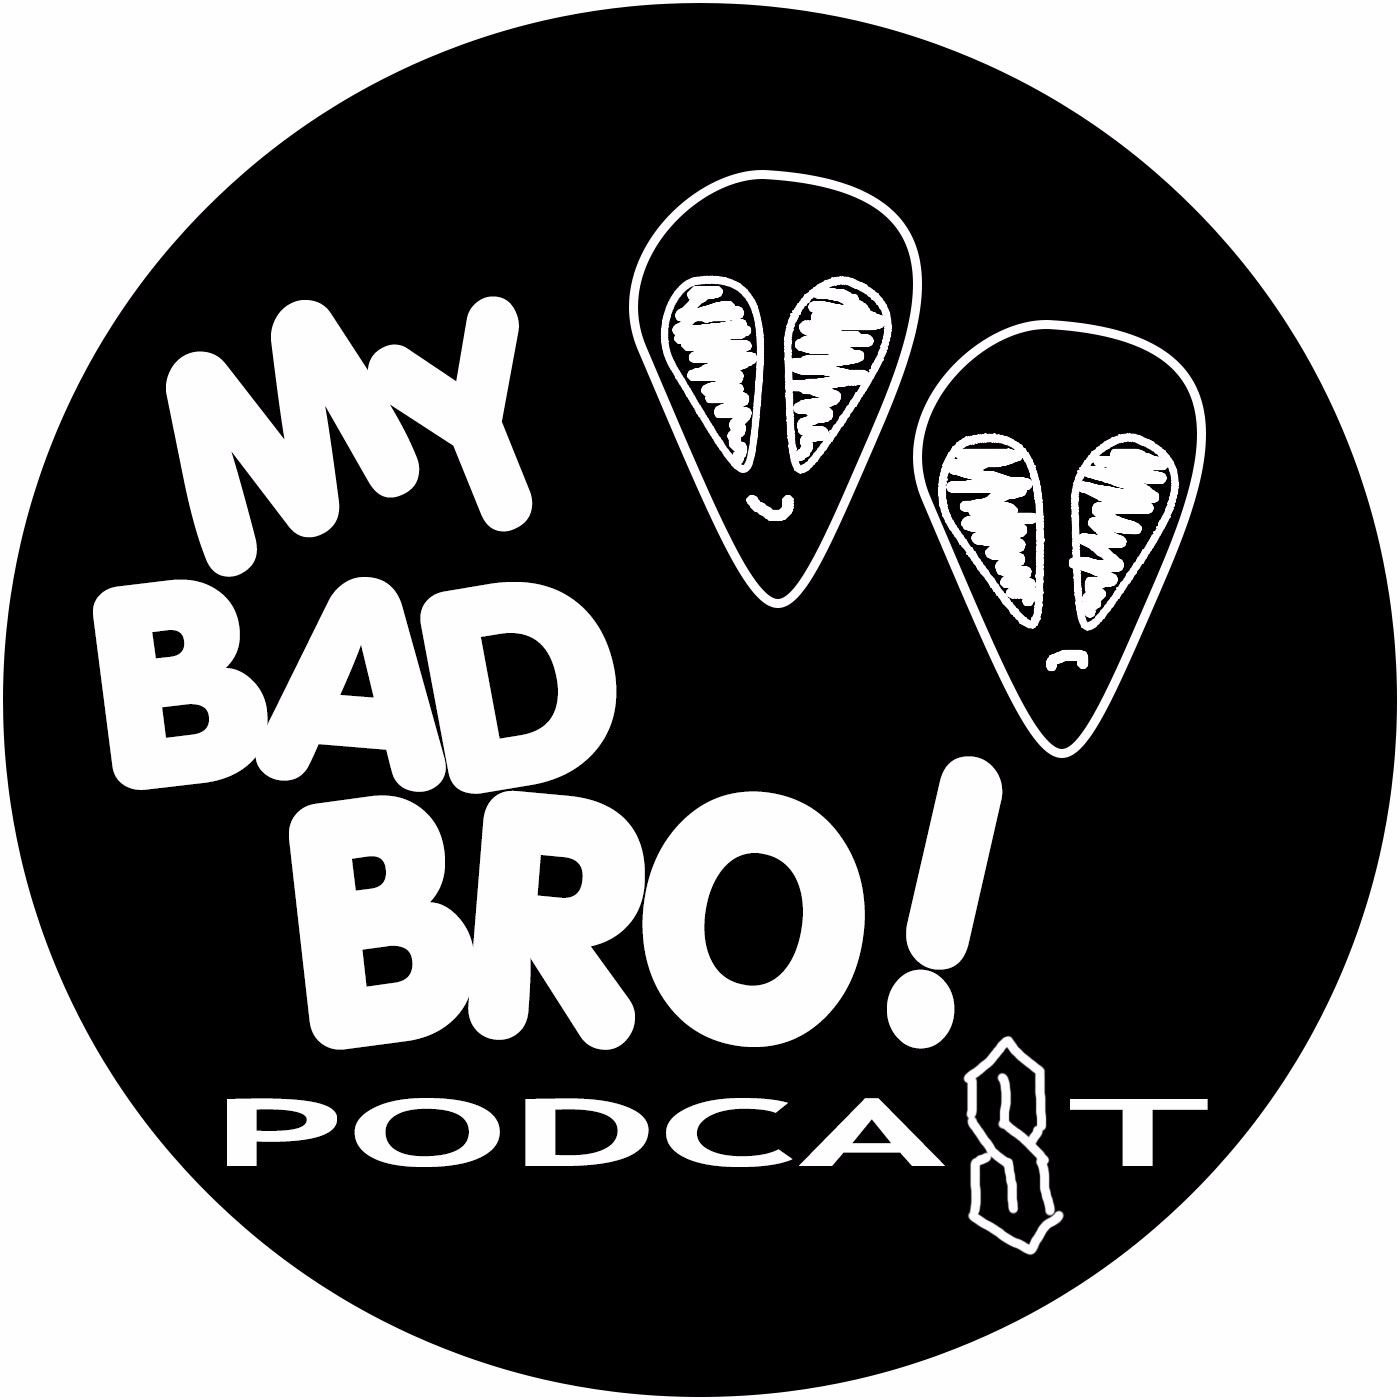 My Bad Bro Podcast